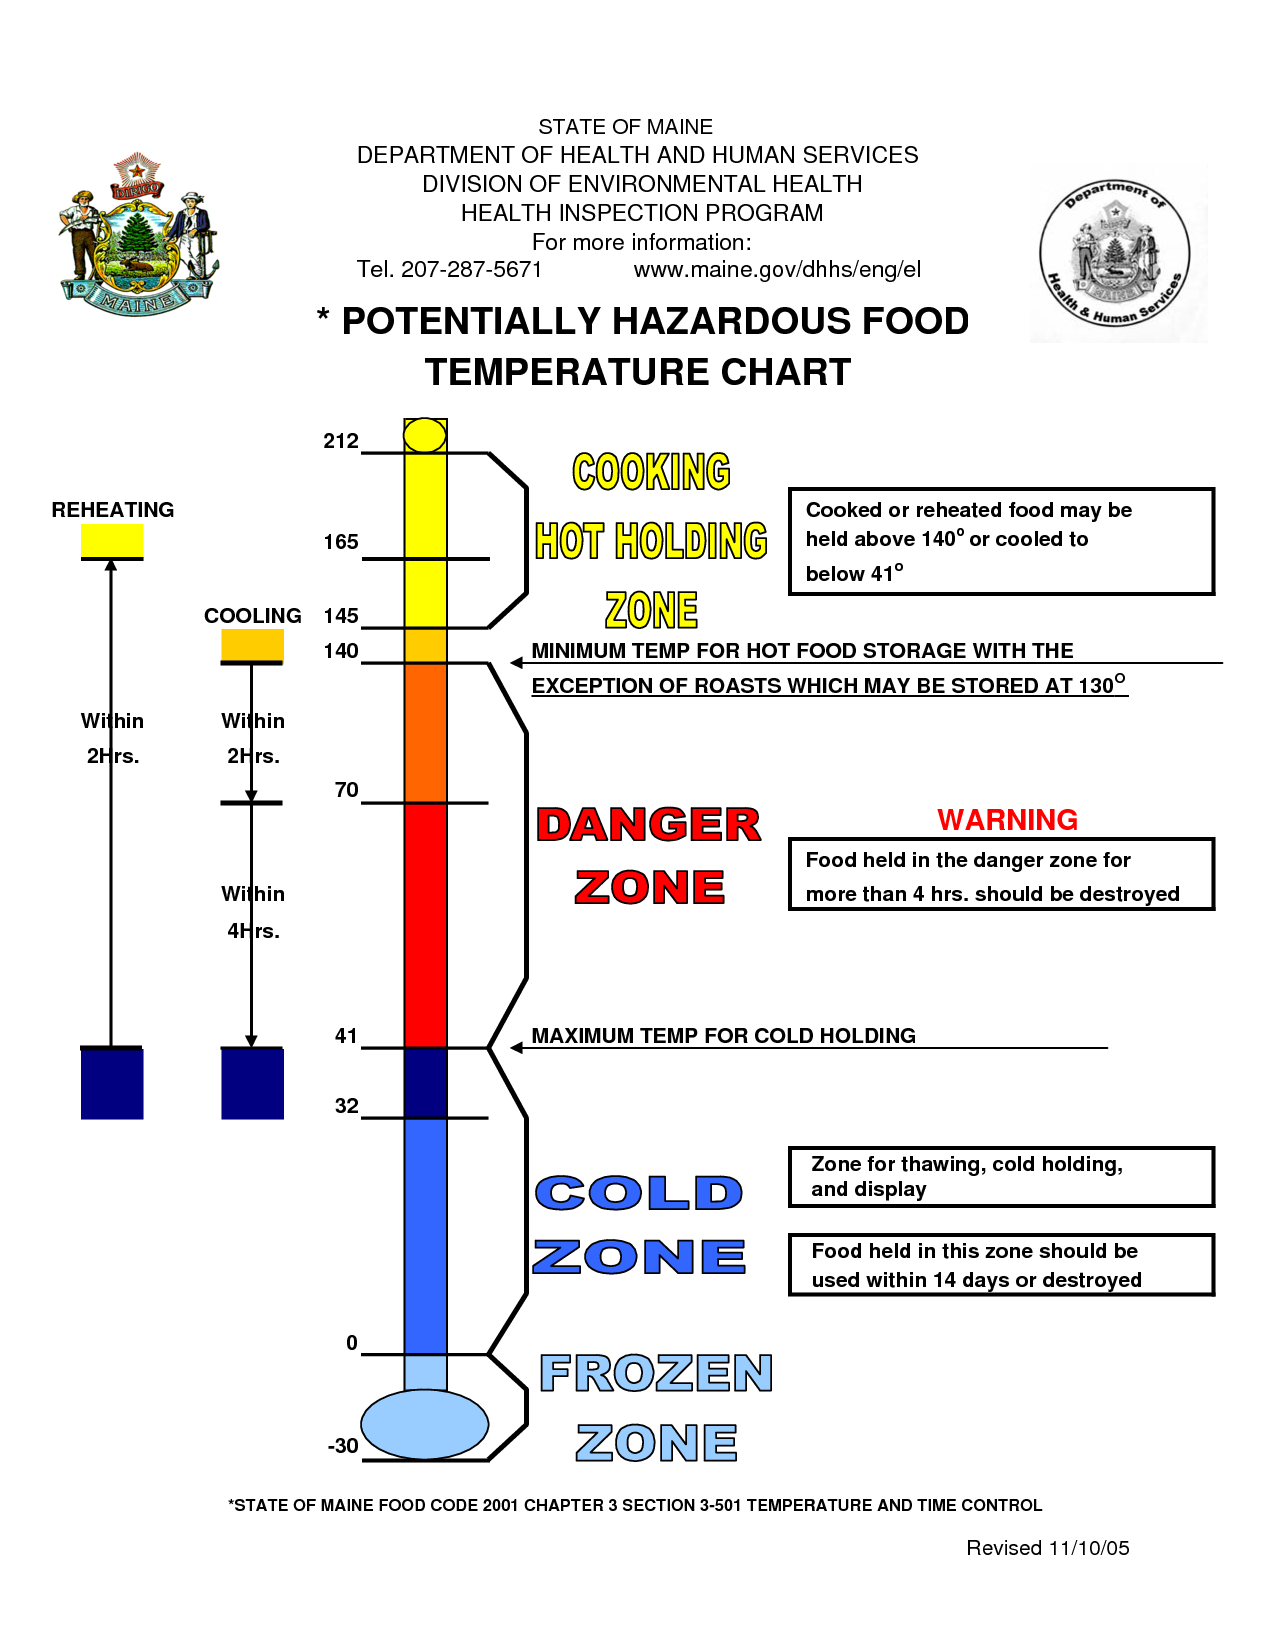 small resolution of temperature chart template potentially hazardous food temperature humidity diagram food temperature diagram